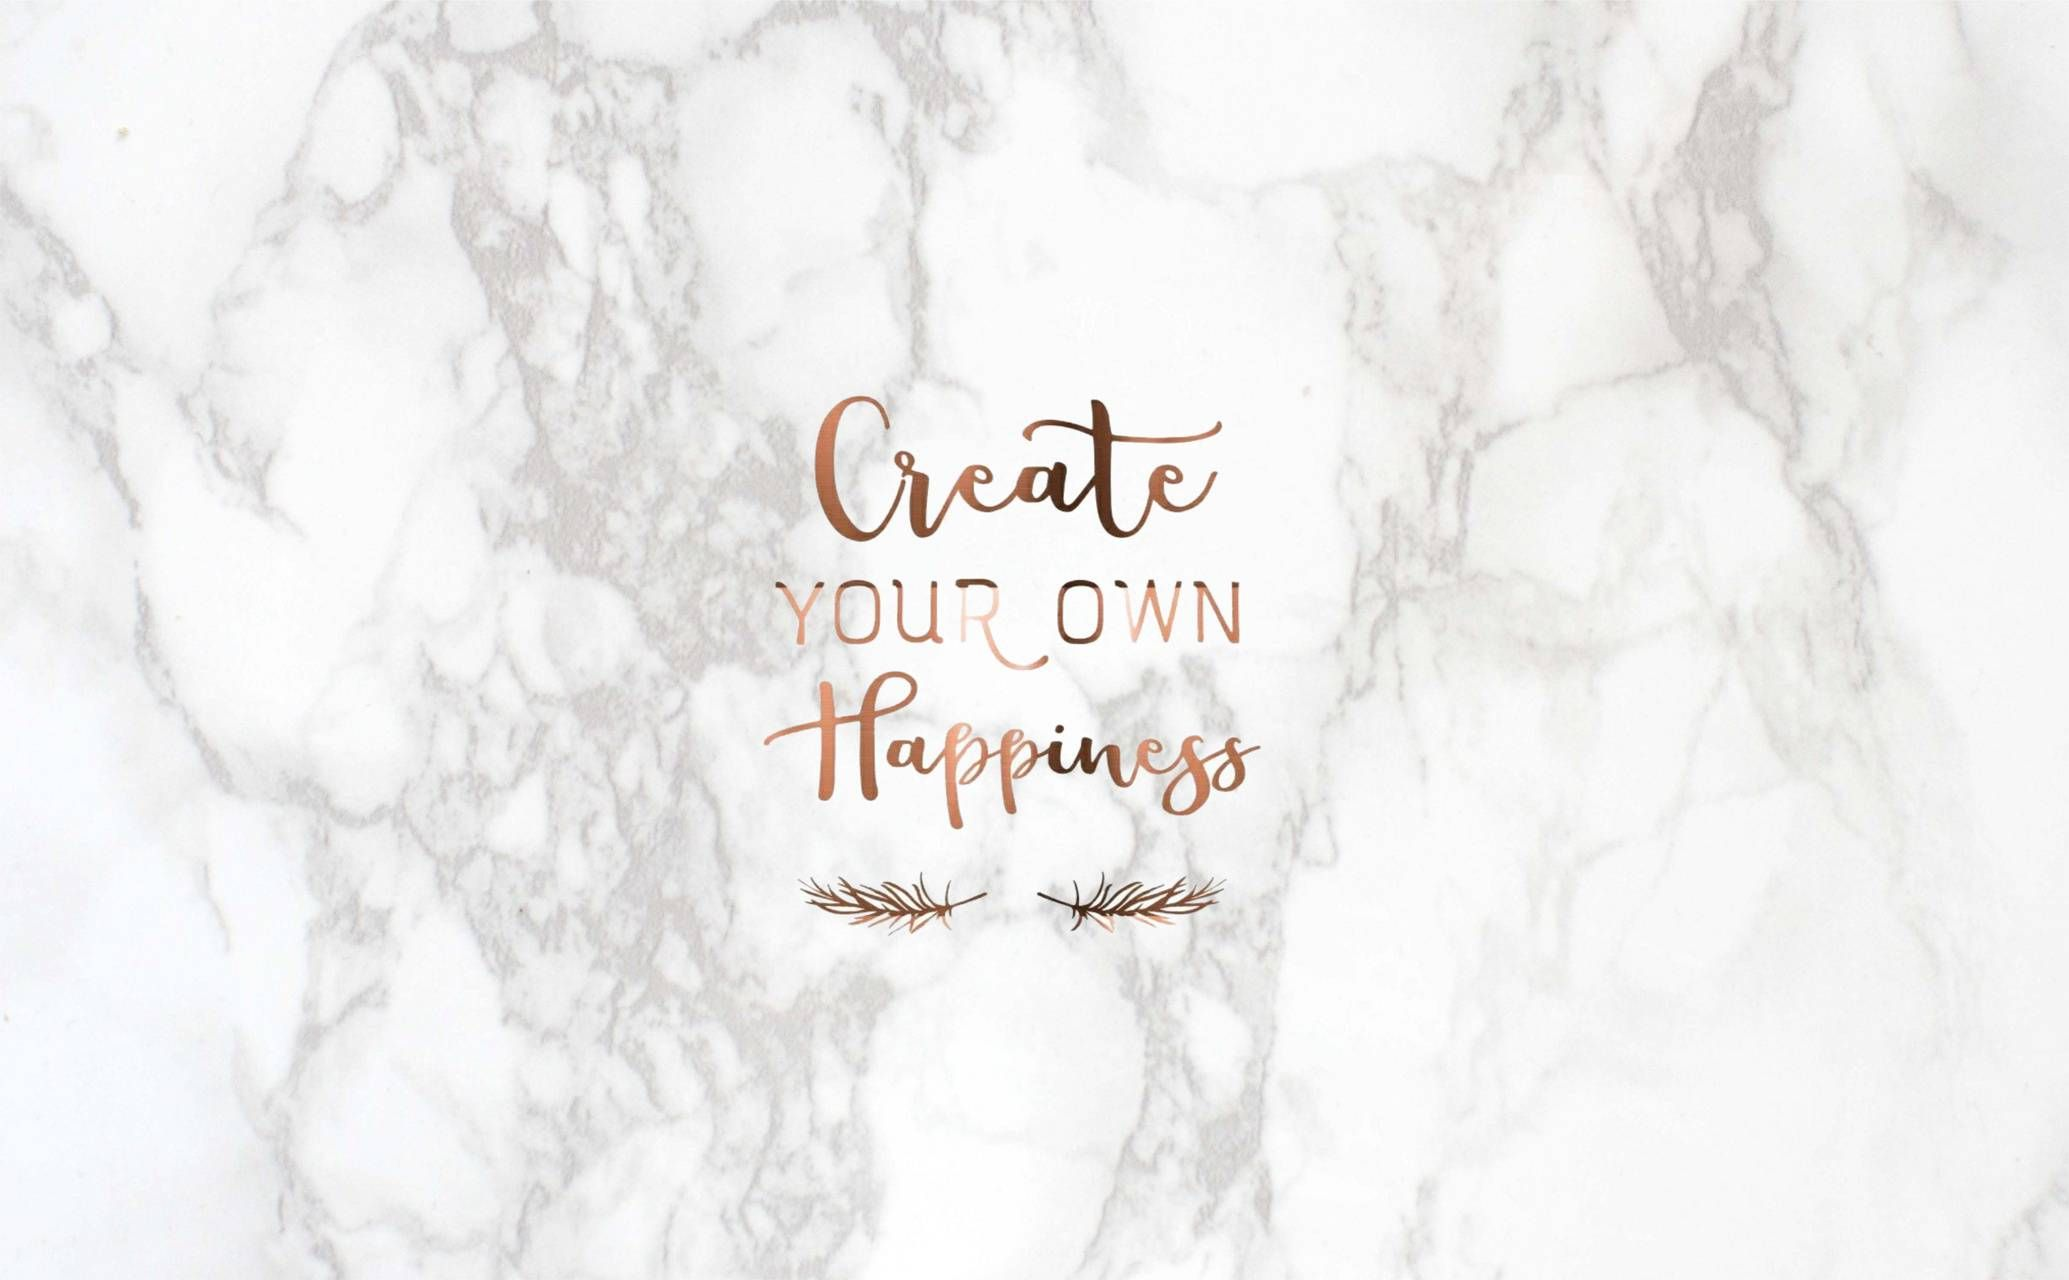 Download Marble Happiness Wallpaper By Silo925 32 Free On Zedge Now B Laptop Wallpaper Quotes Computer Wallpaper Desktop Wallpapers Cute Laptop Wallpaper